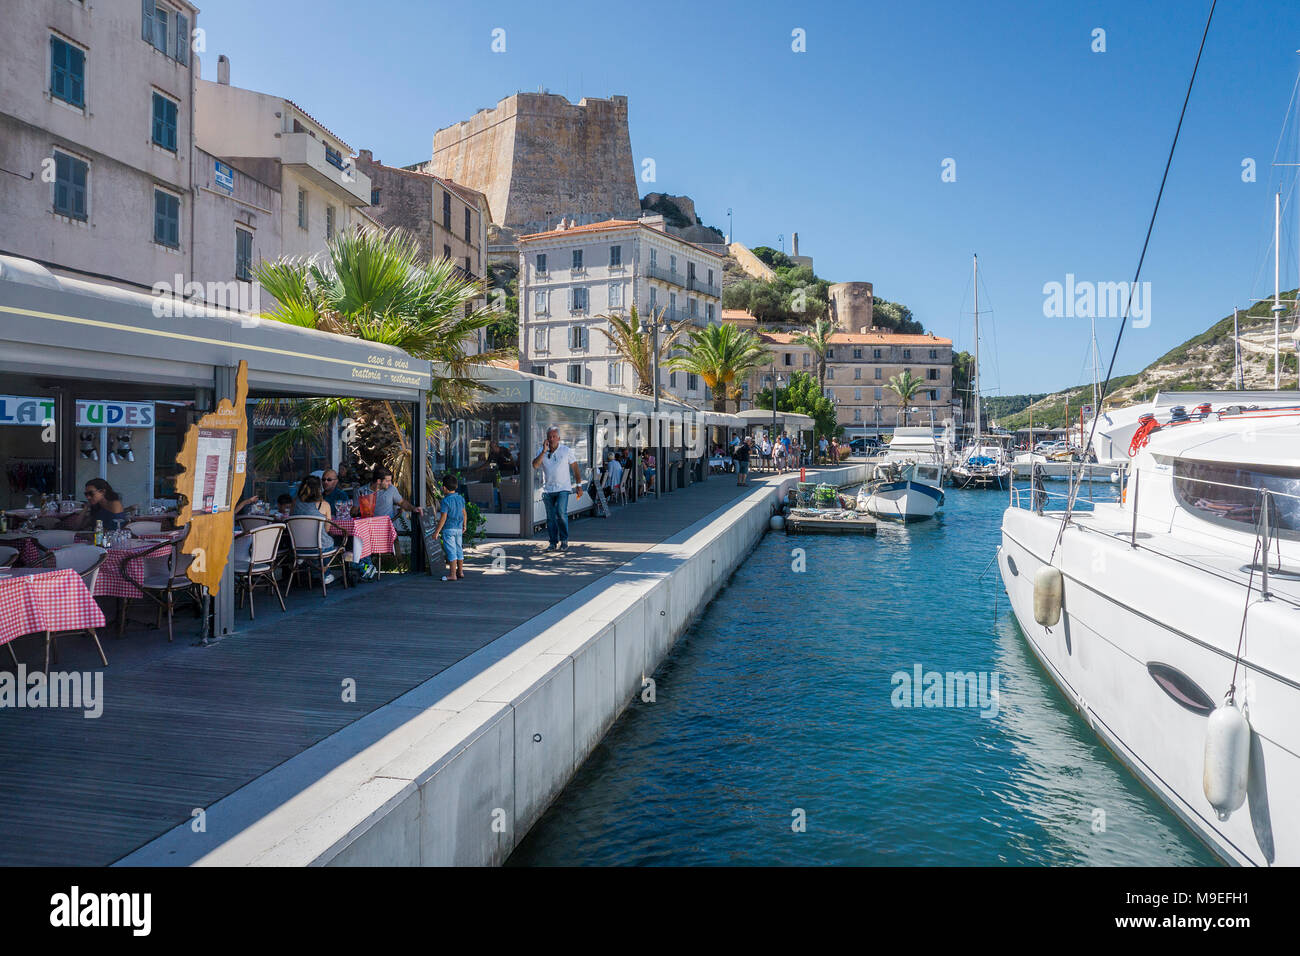 Fishery and Yacht harbour of Bonifacio, Corsica, France, Mediterranean, Europe - Stock Image